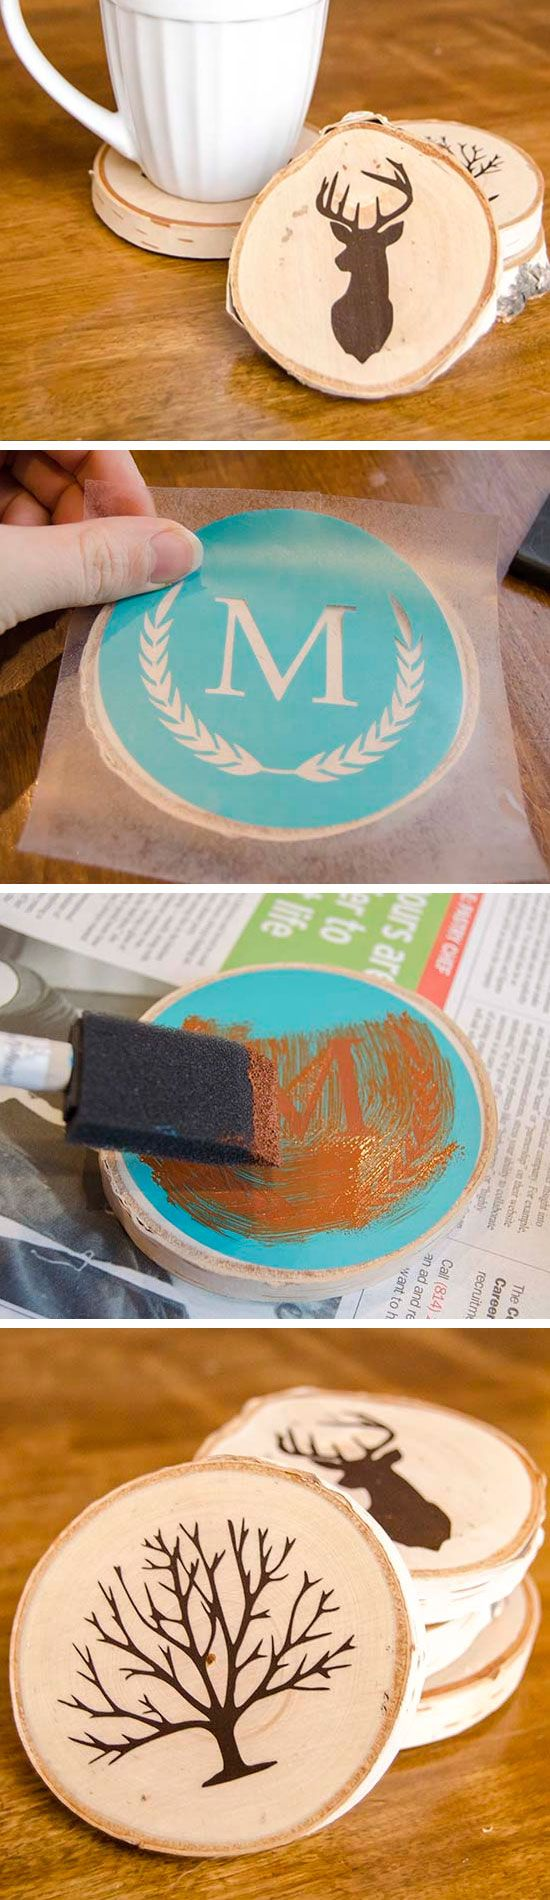 15 diy projects to have coasters pretty designs for Homemade coaster ideas